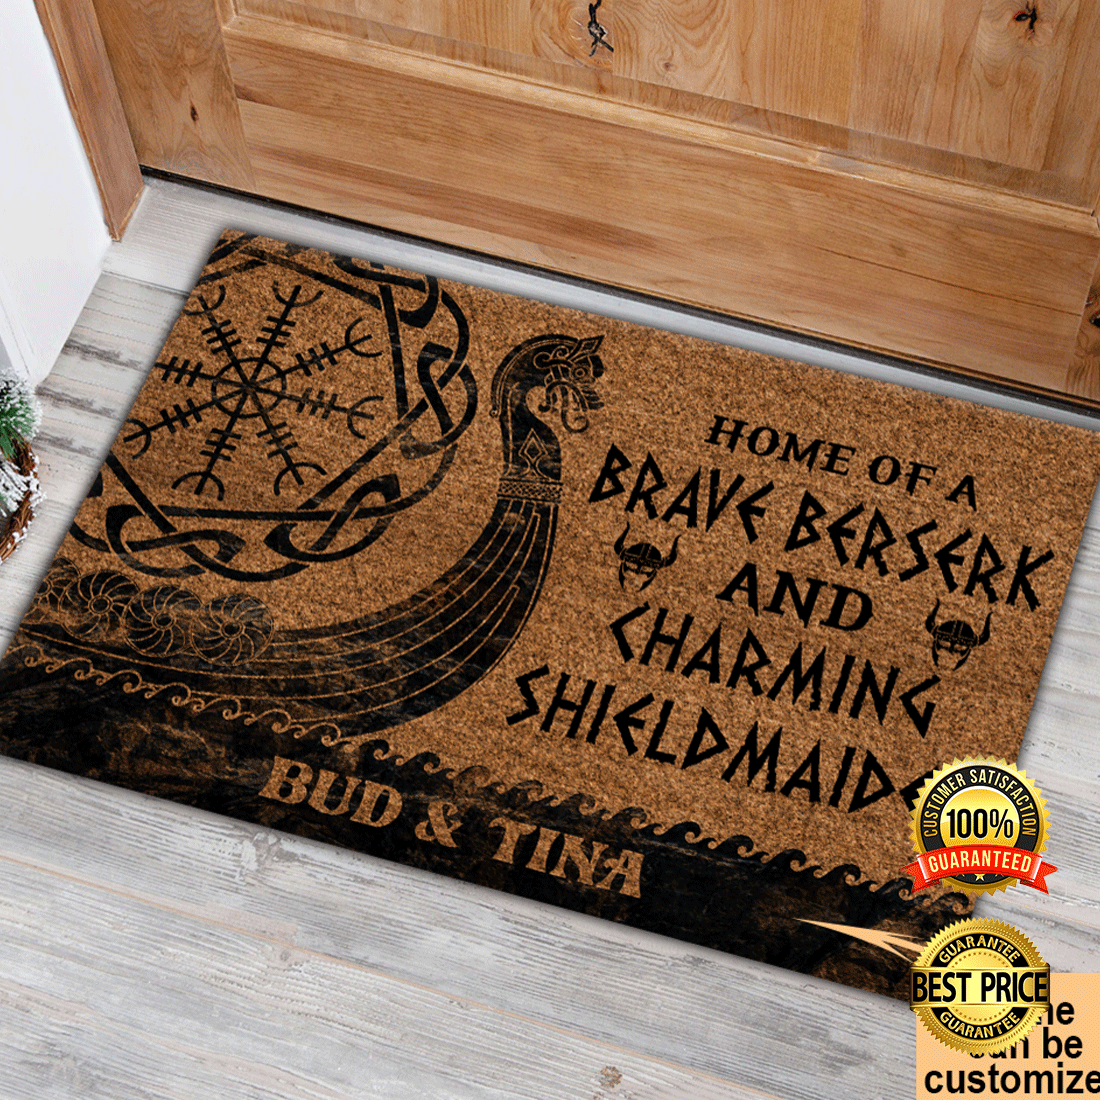 PERSONALIZED HOME OF A BRAVE BERSERK AND CHARMING SHIELDMAIDEN DOORMAT 5